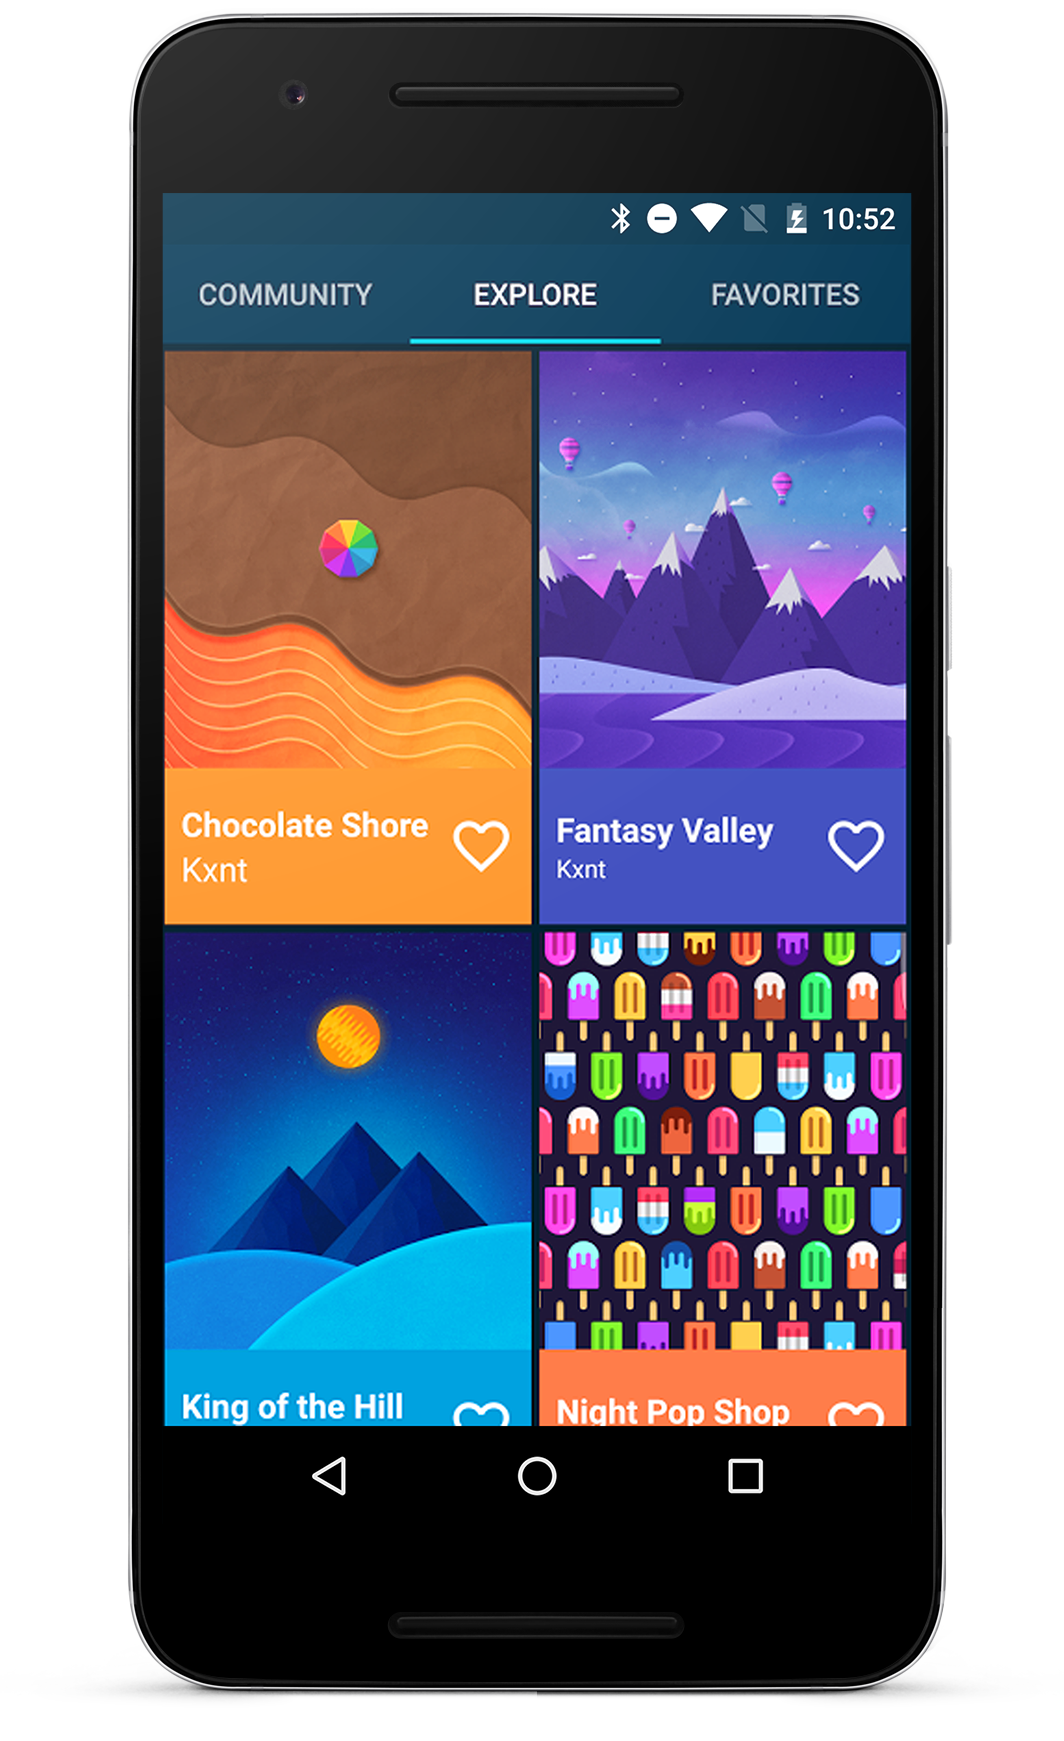 Sift Through Hundreds Of Original Wallpapers Hand Crafted - Mobile App , HD Wallpaper & Backgrounds